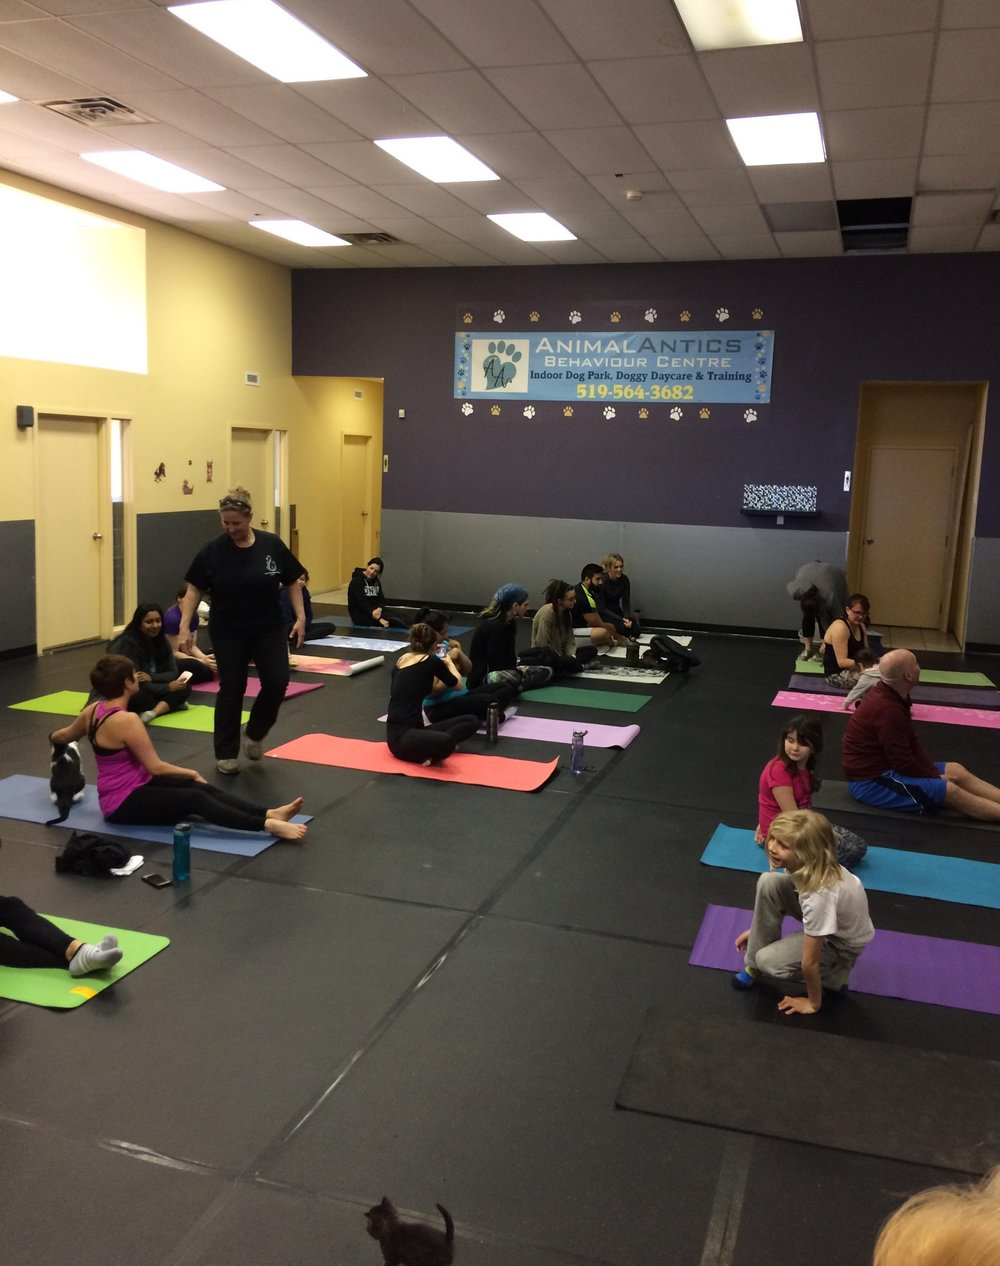 Kitty and Bunny Yoga - Hosted by CARA and Tiny Paws